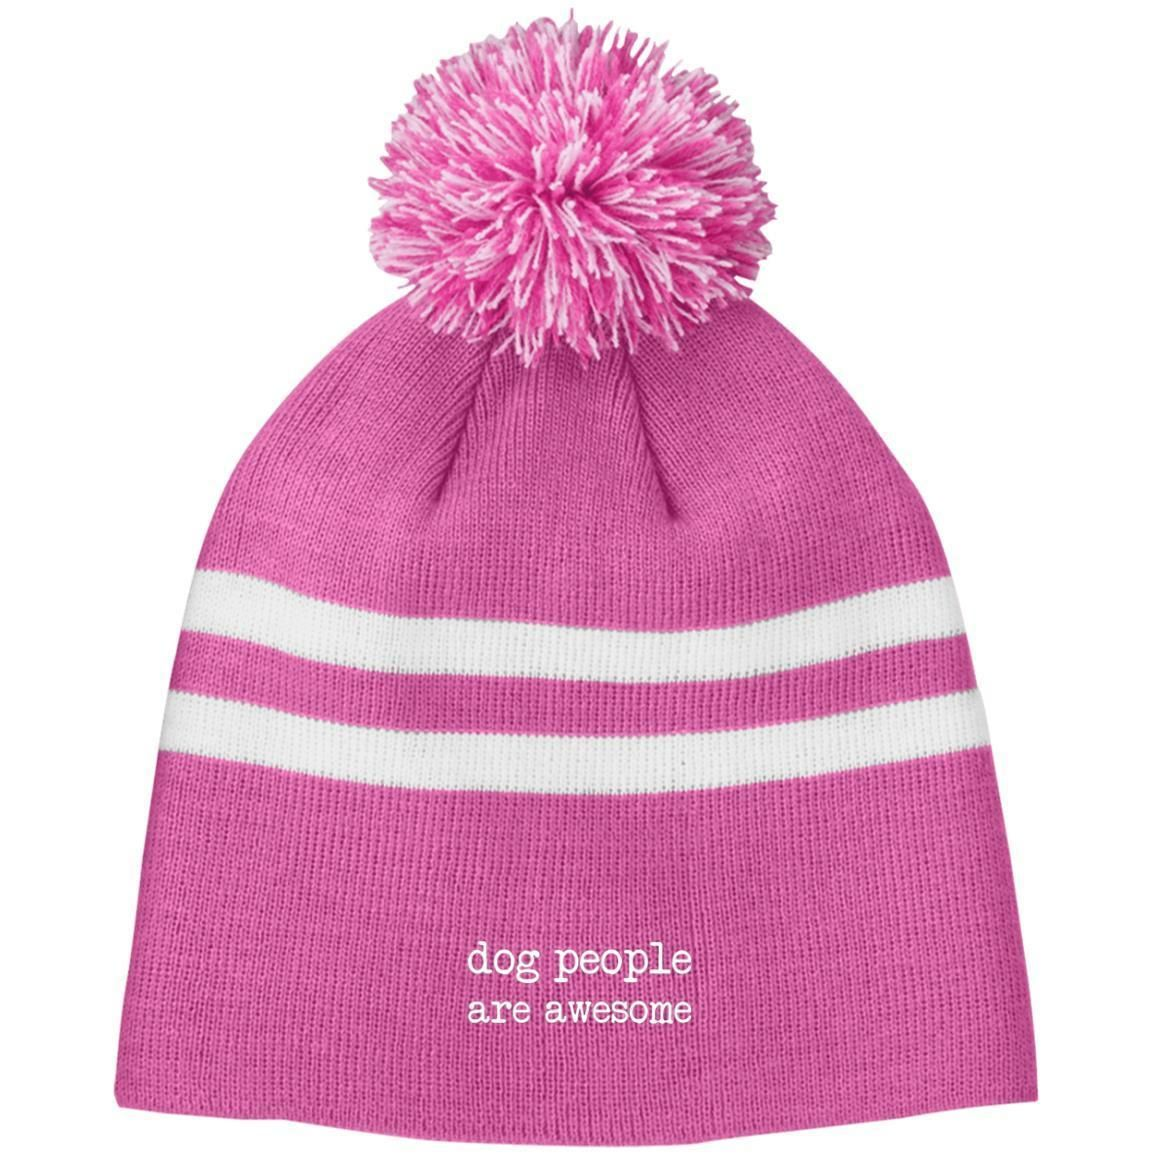 45414a8de Dog People Are Awesome Knit Pom Two Tone Beanie | Products | Beanie ...